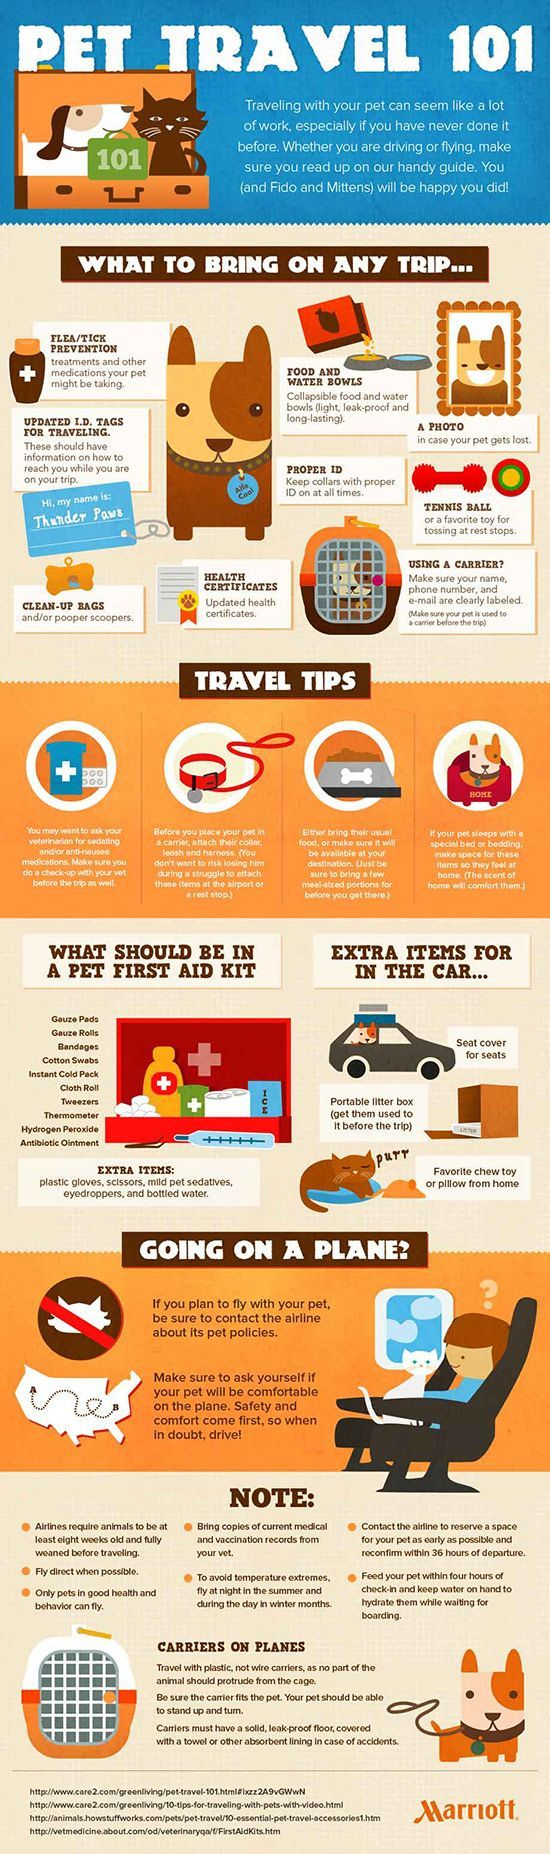 Tips to travel with your NYC pet! For all of your pet needs visit your closest Duane Reade or check out Duanereade.com!